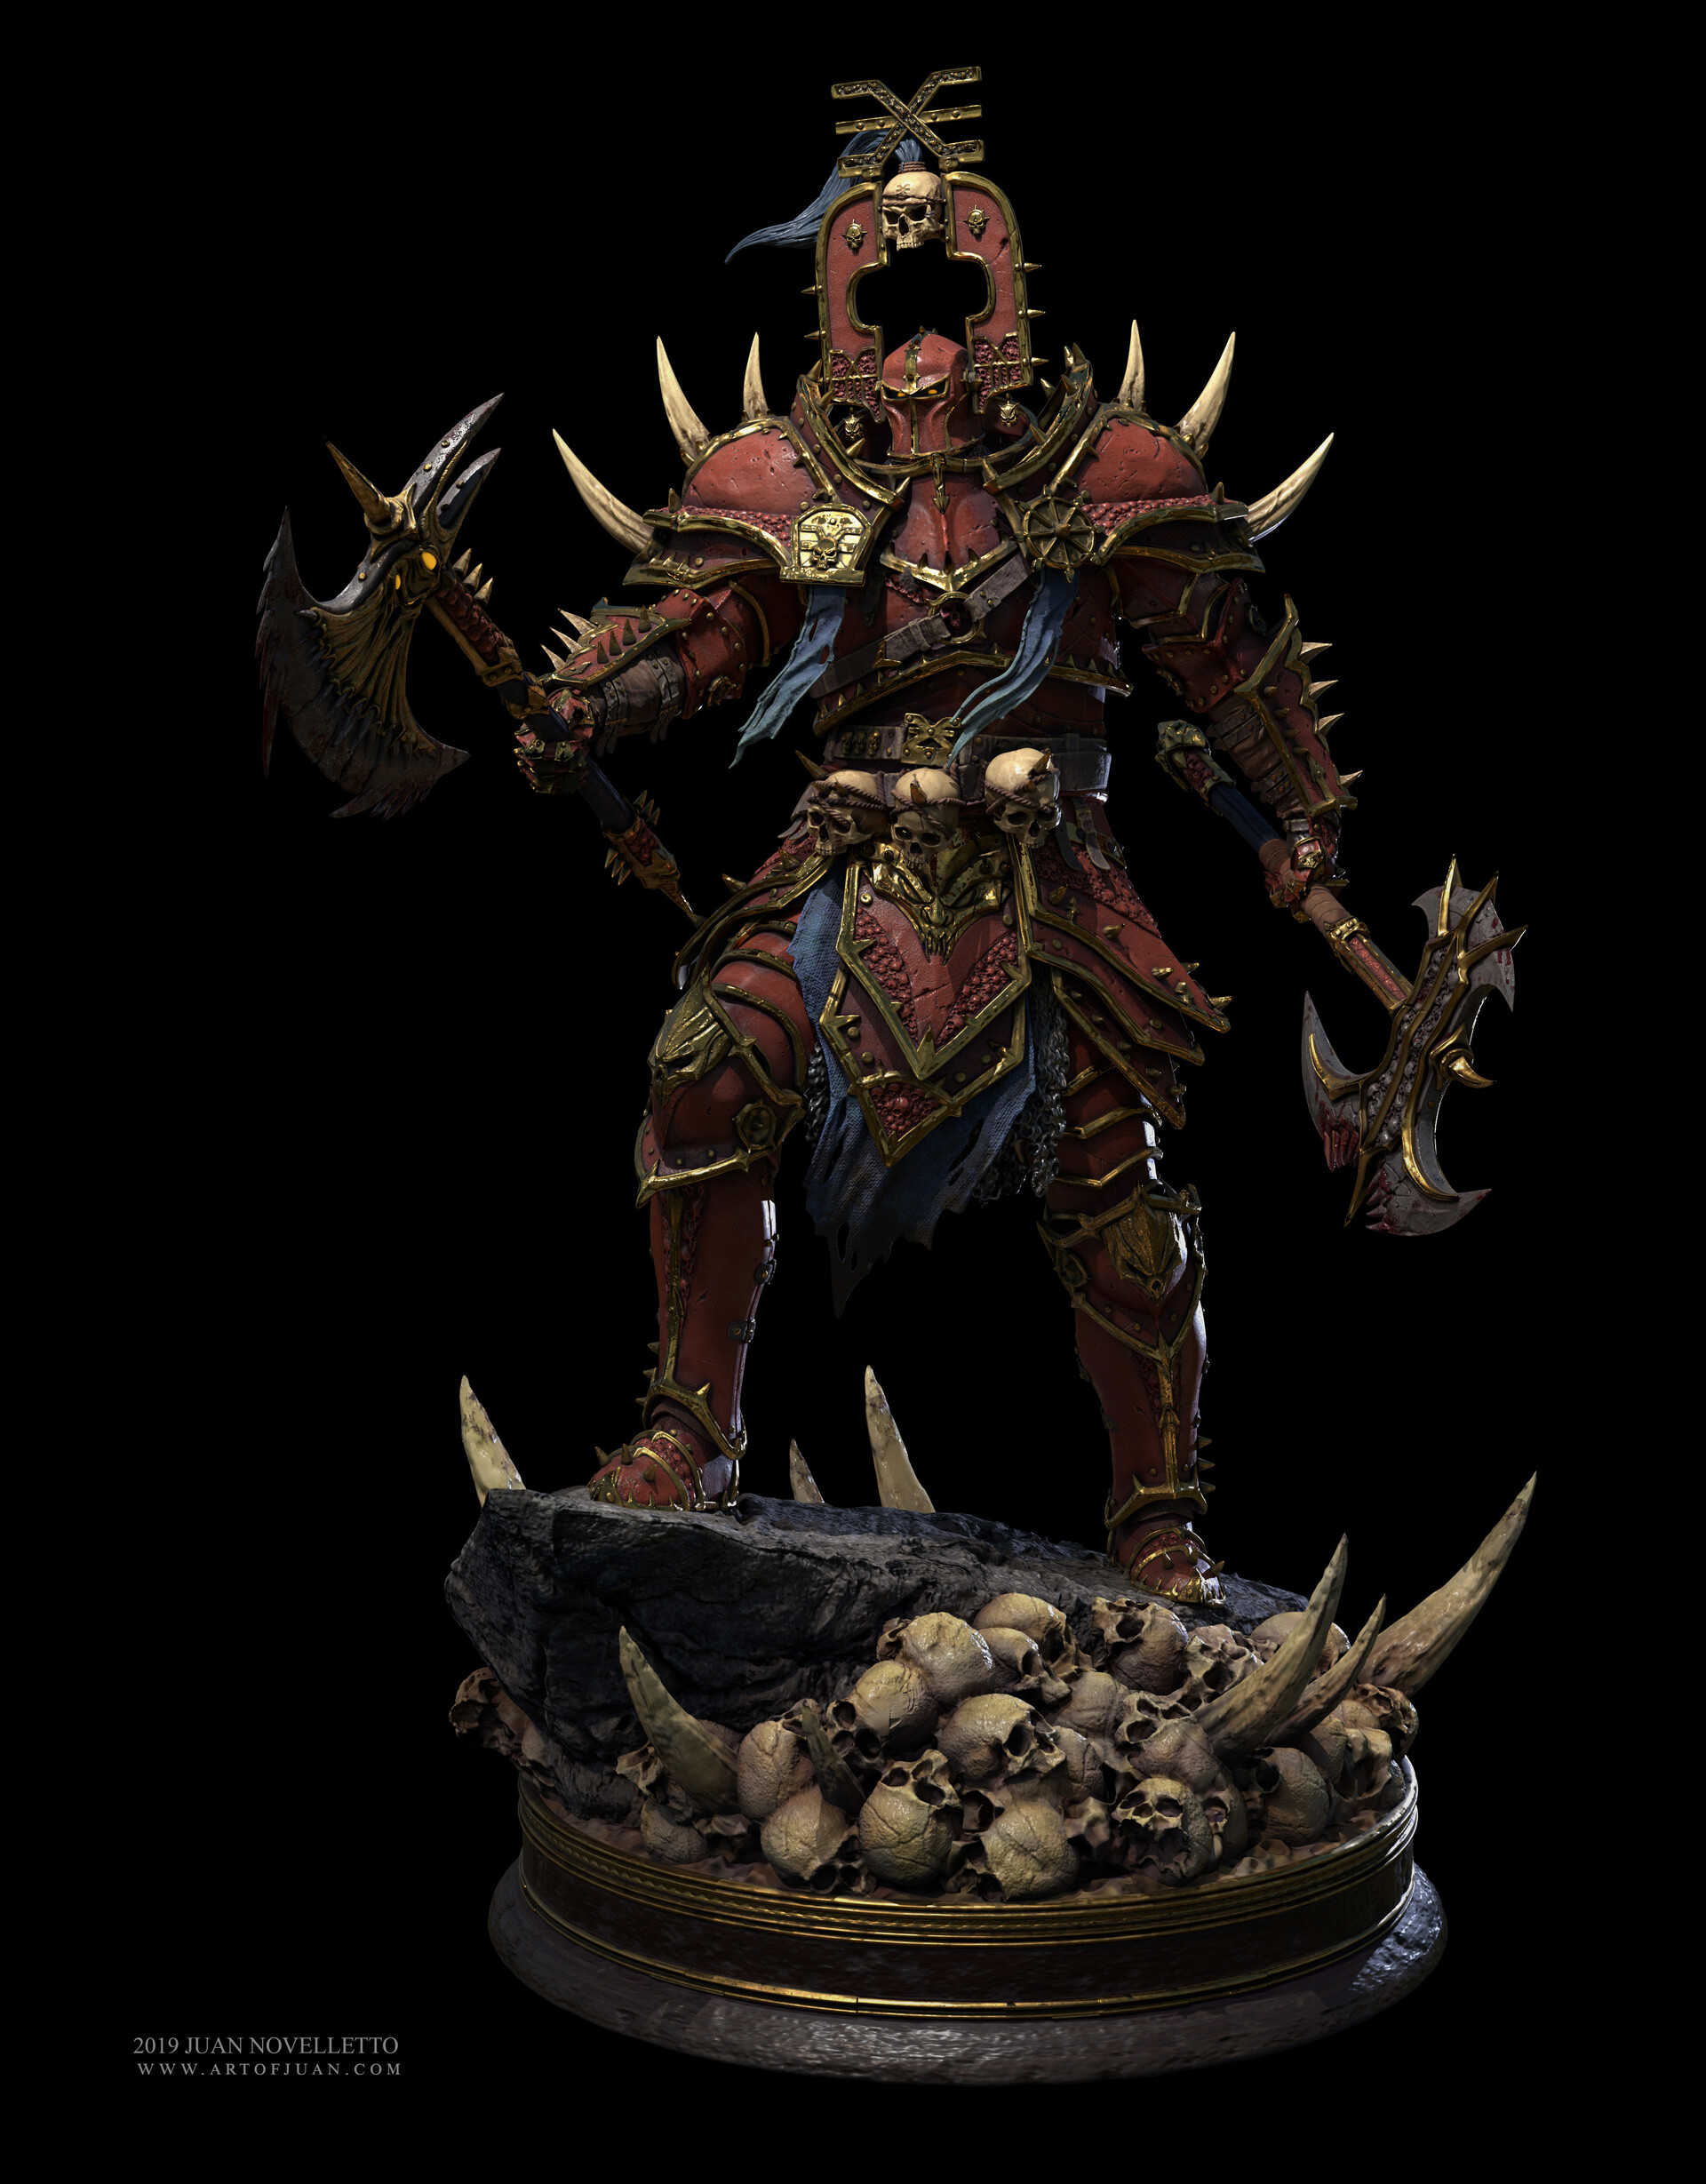 Khorne Champion of Chaos, Warhammer Fantasy